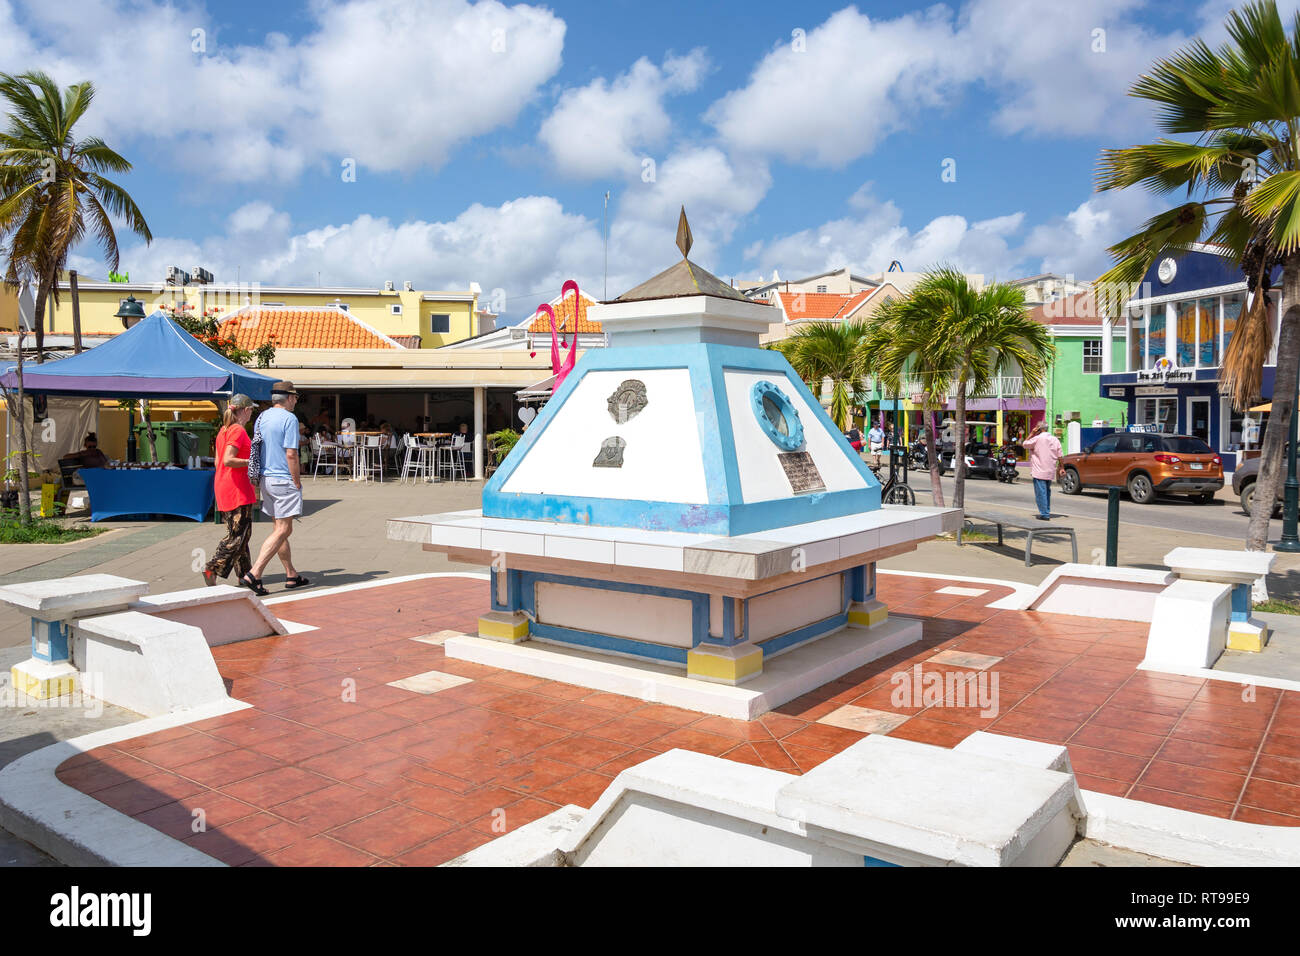 Plaza Wilhelmina, Kralendijk, Bonaire, ABC Islands, Leeward Antilles, Caribbean Stock Photo